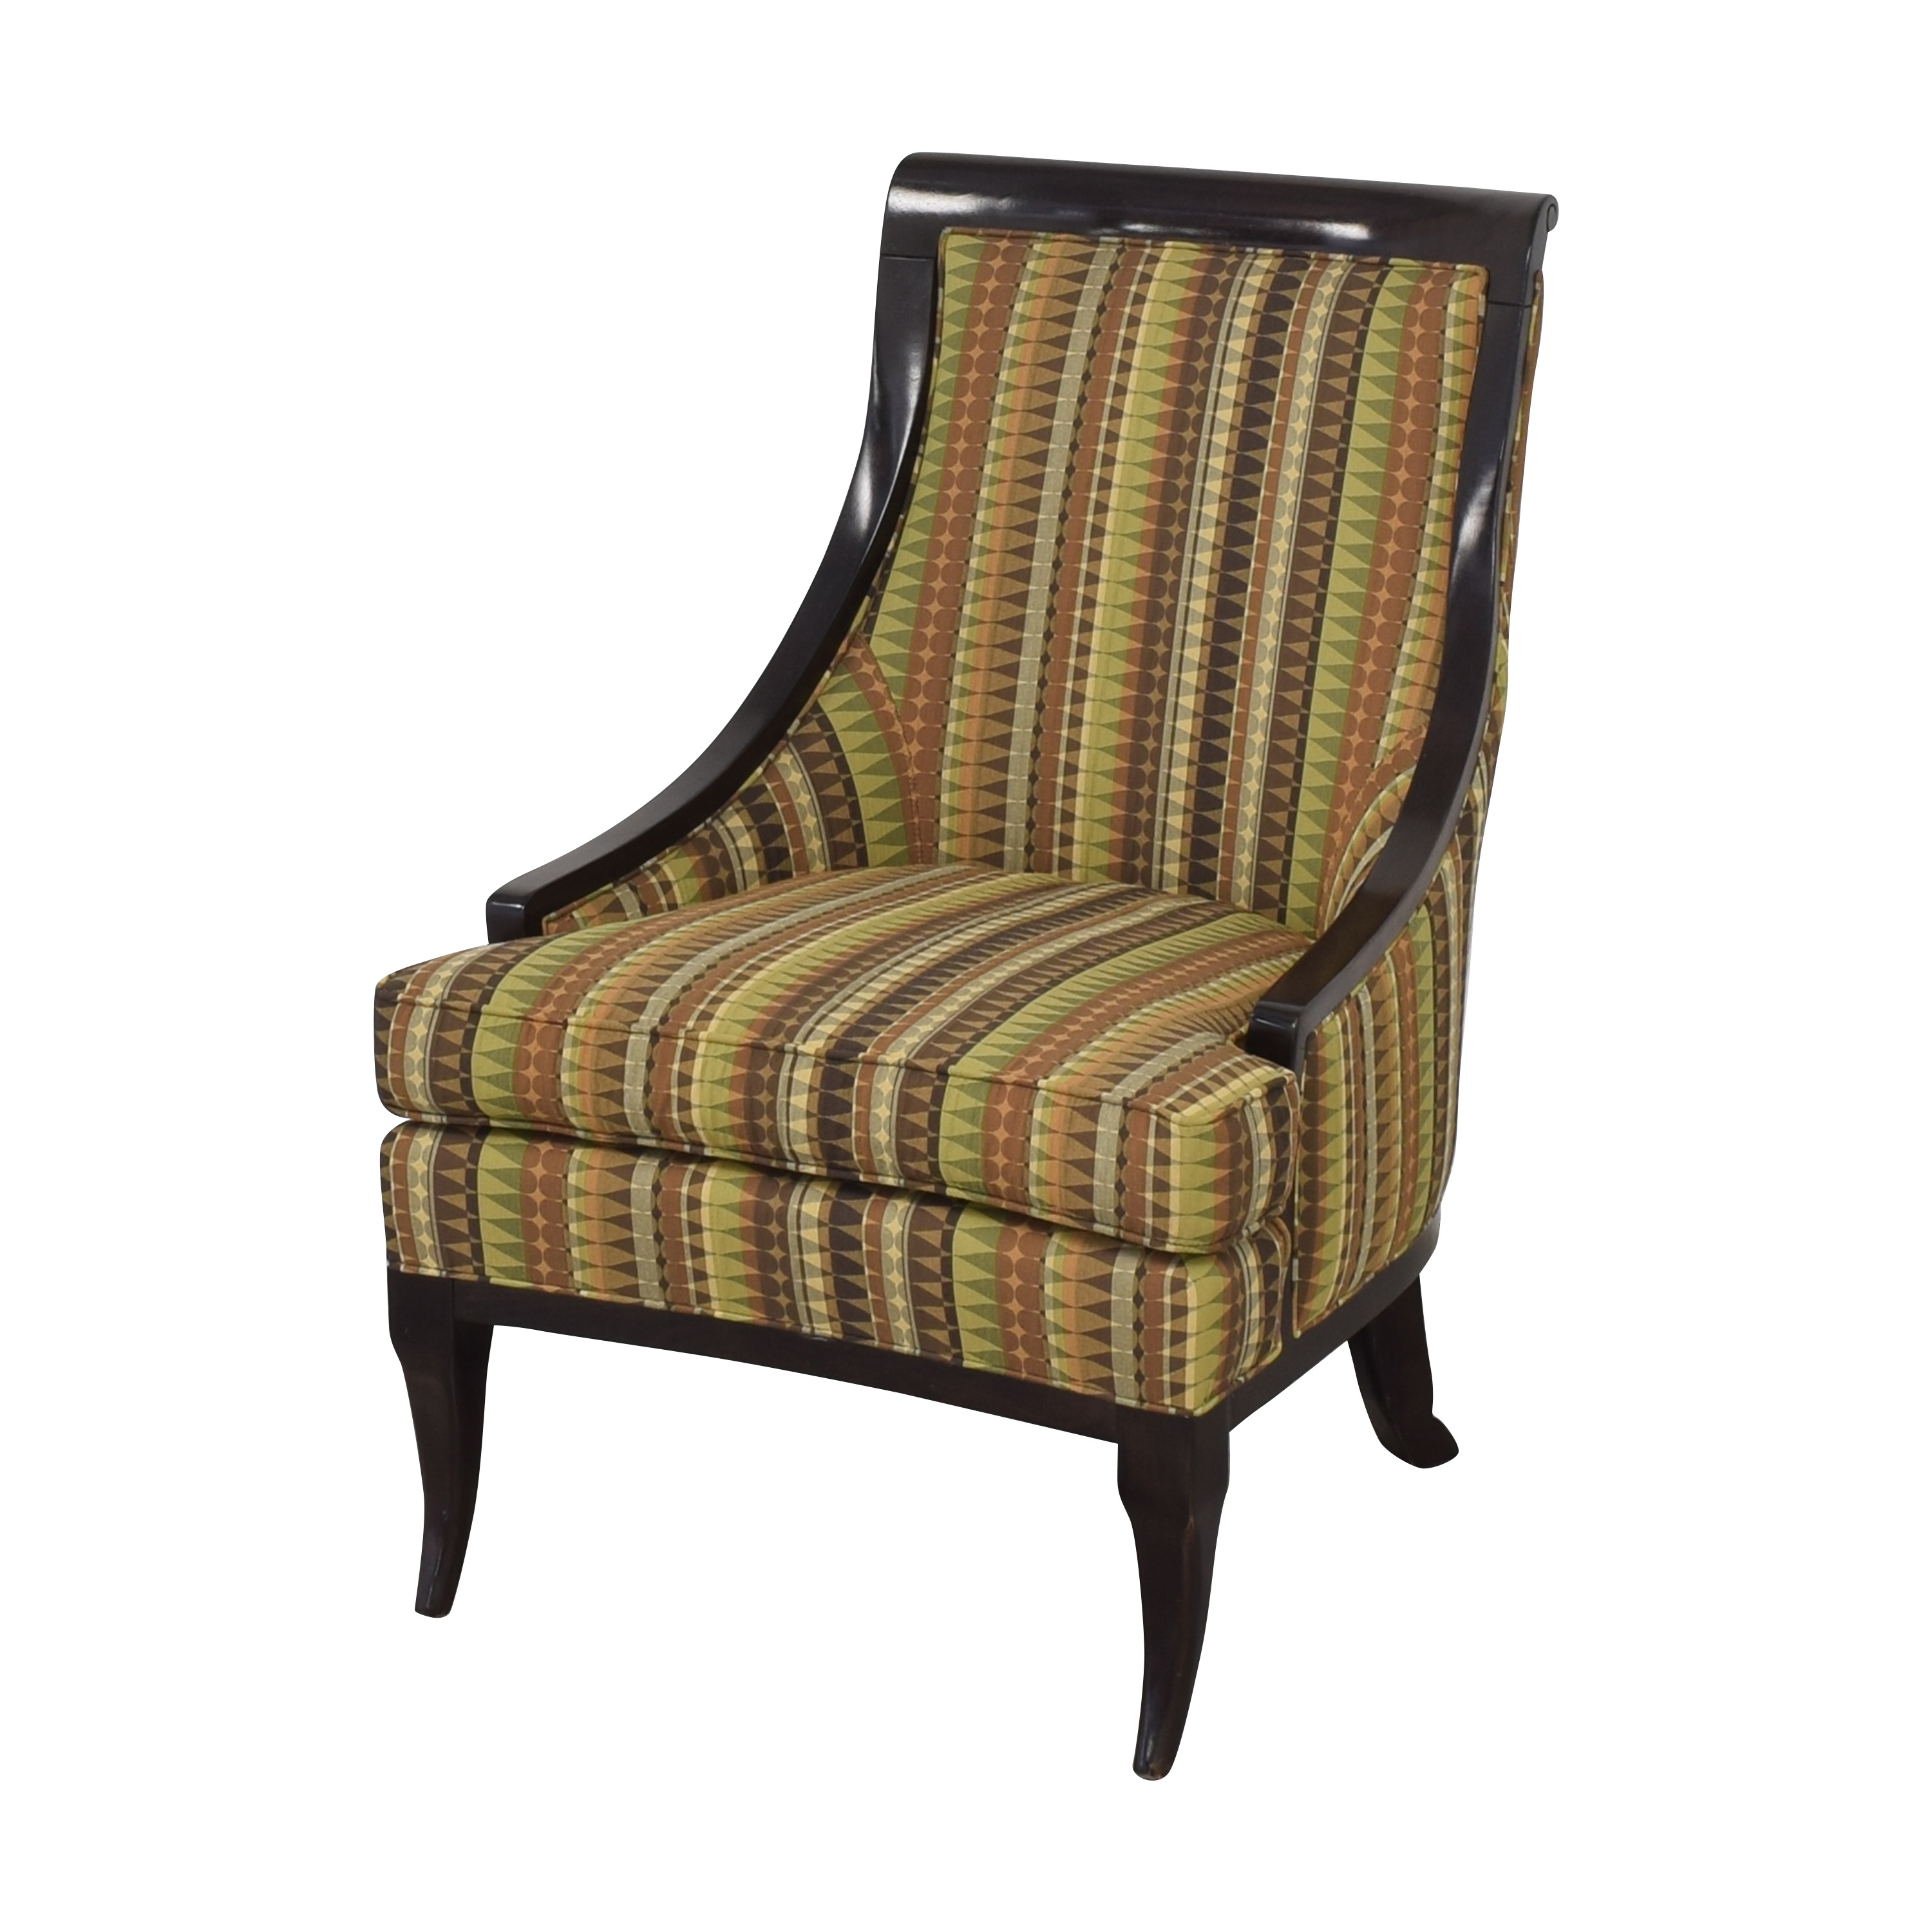 Century Furniture Century Furniture Upholstered Accent Chair dimensions